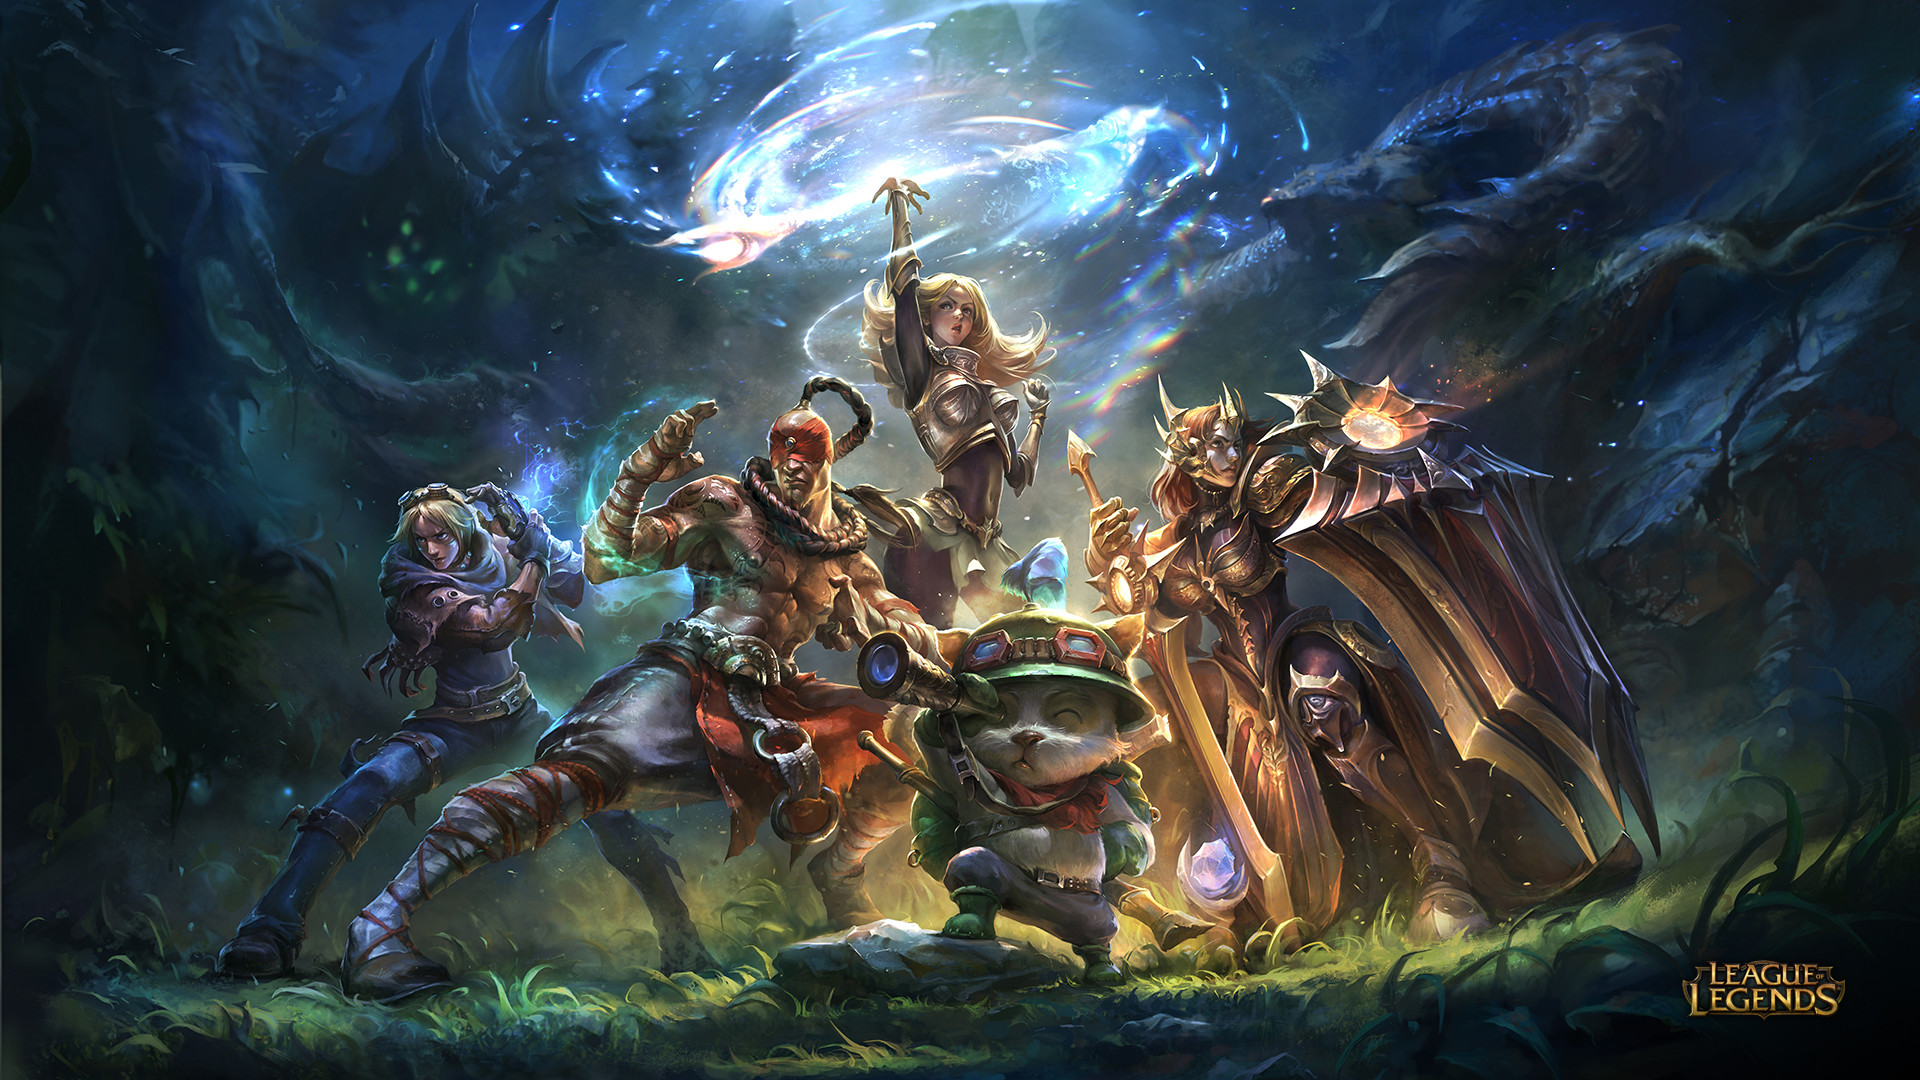 League Of Legends 1080p Wallpaper 76 Images